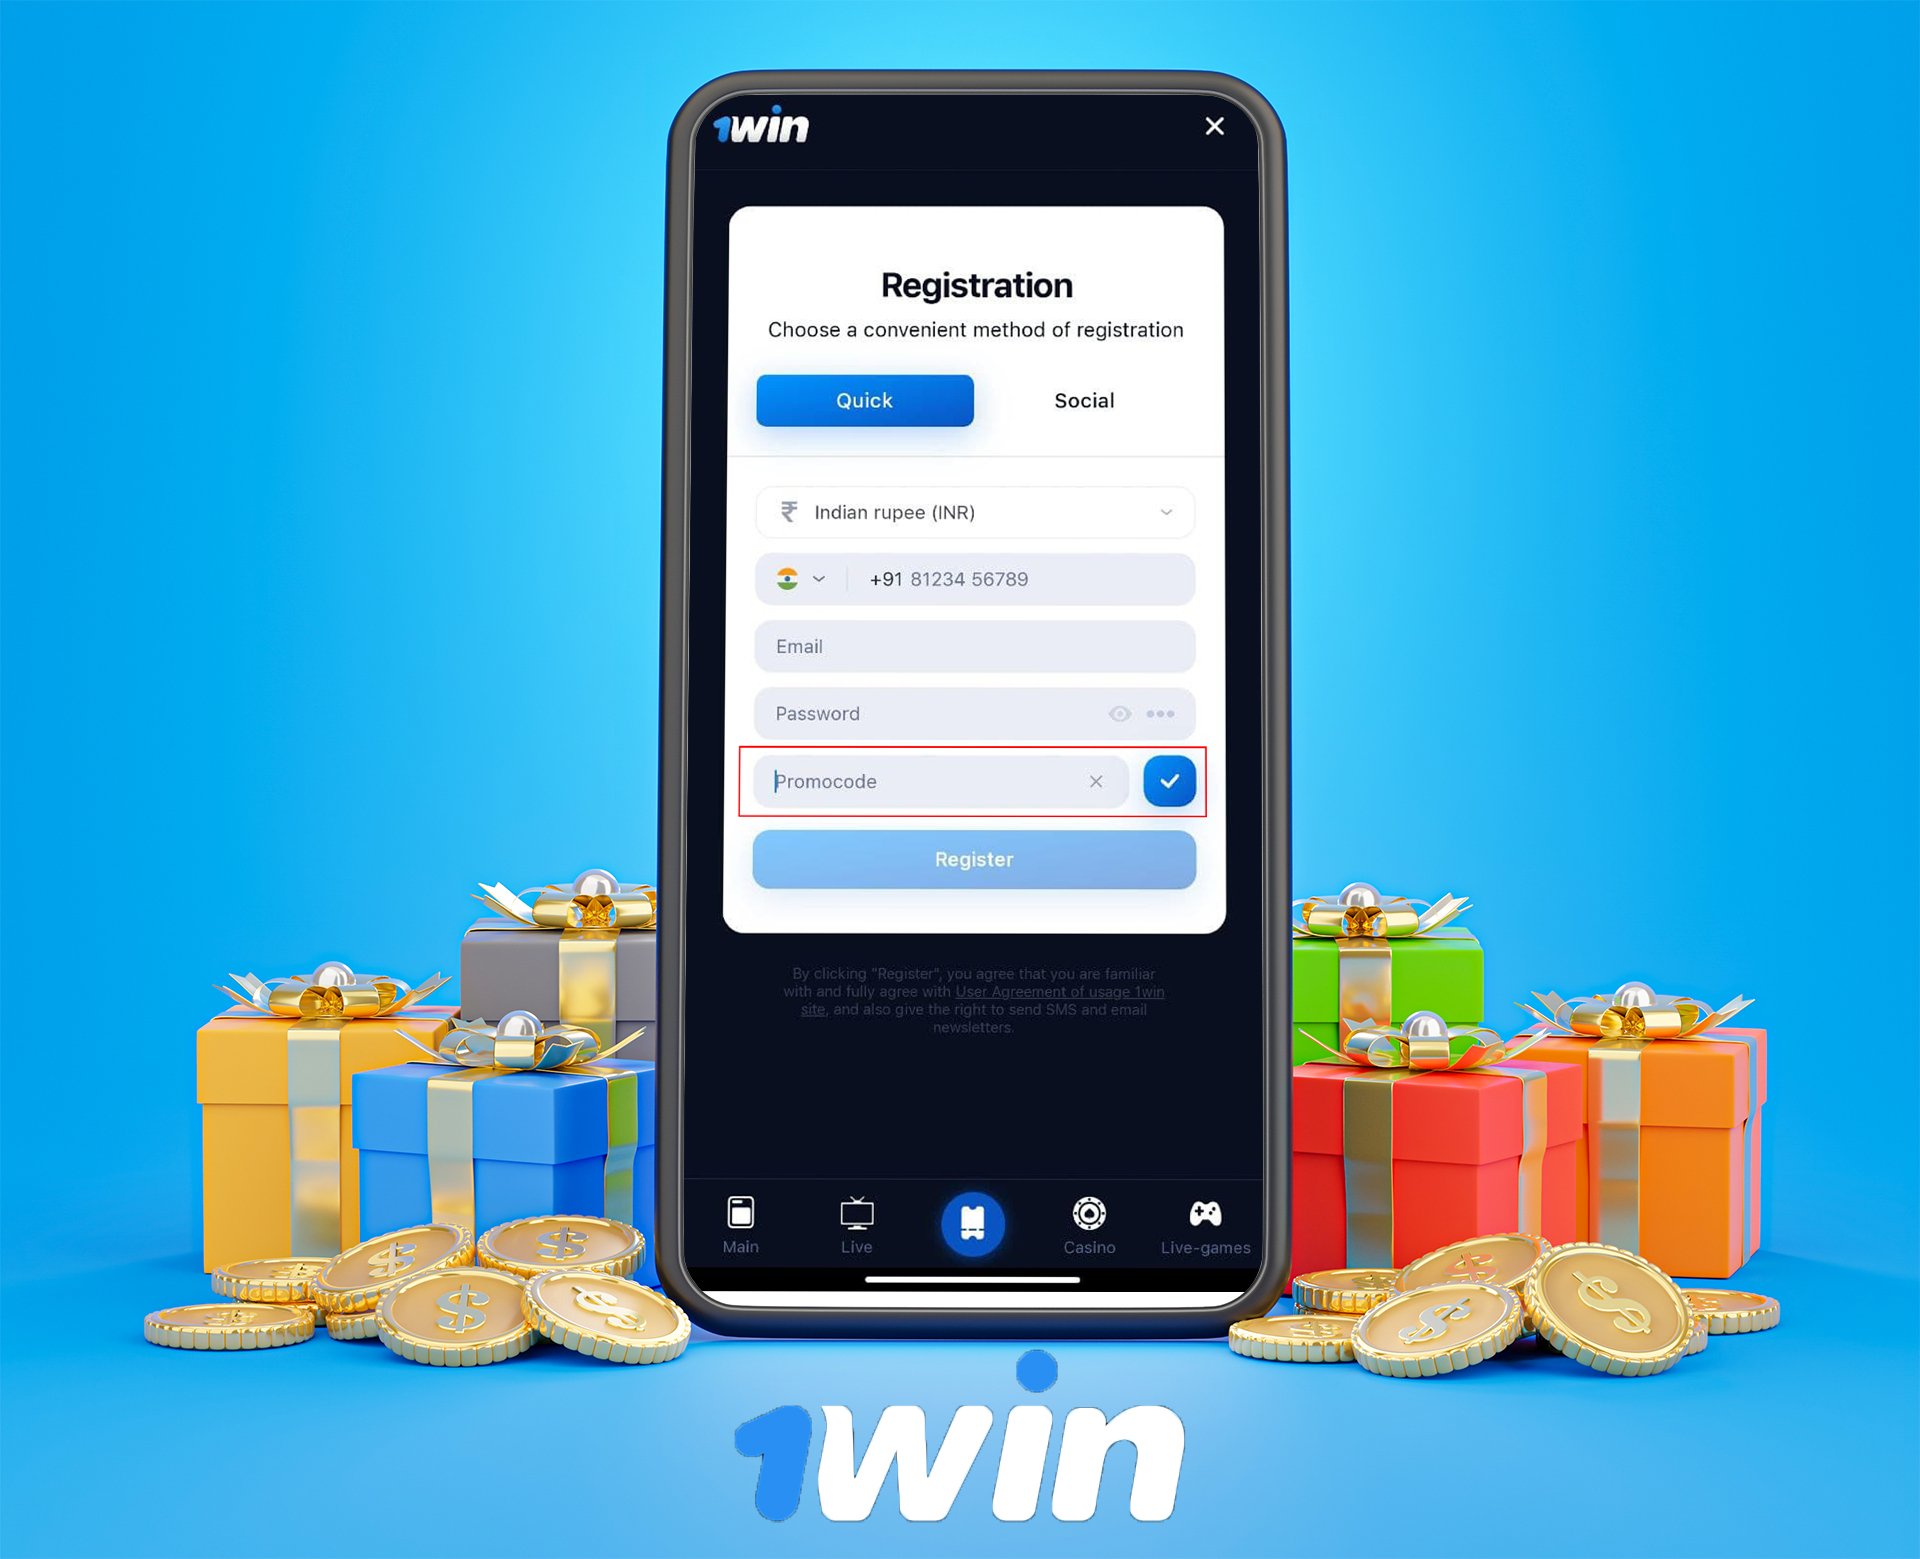 To activate the bonus you only need to enter a promo code during registration proccess at 1win app.